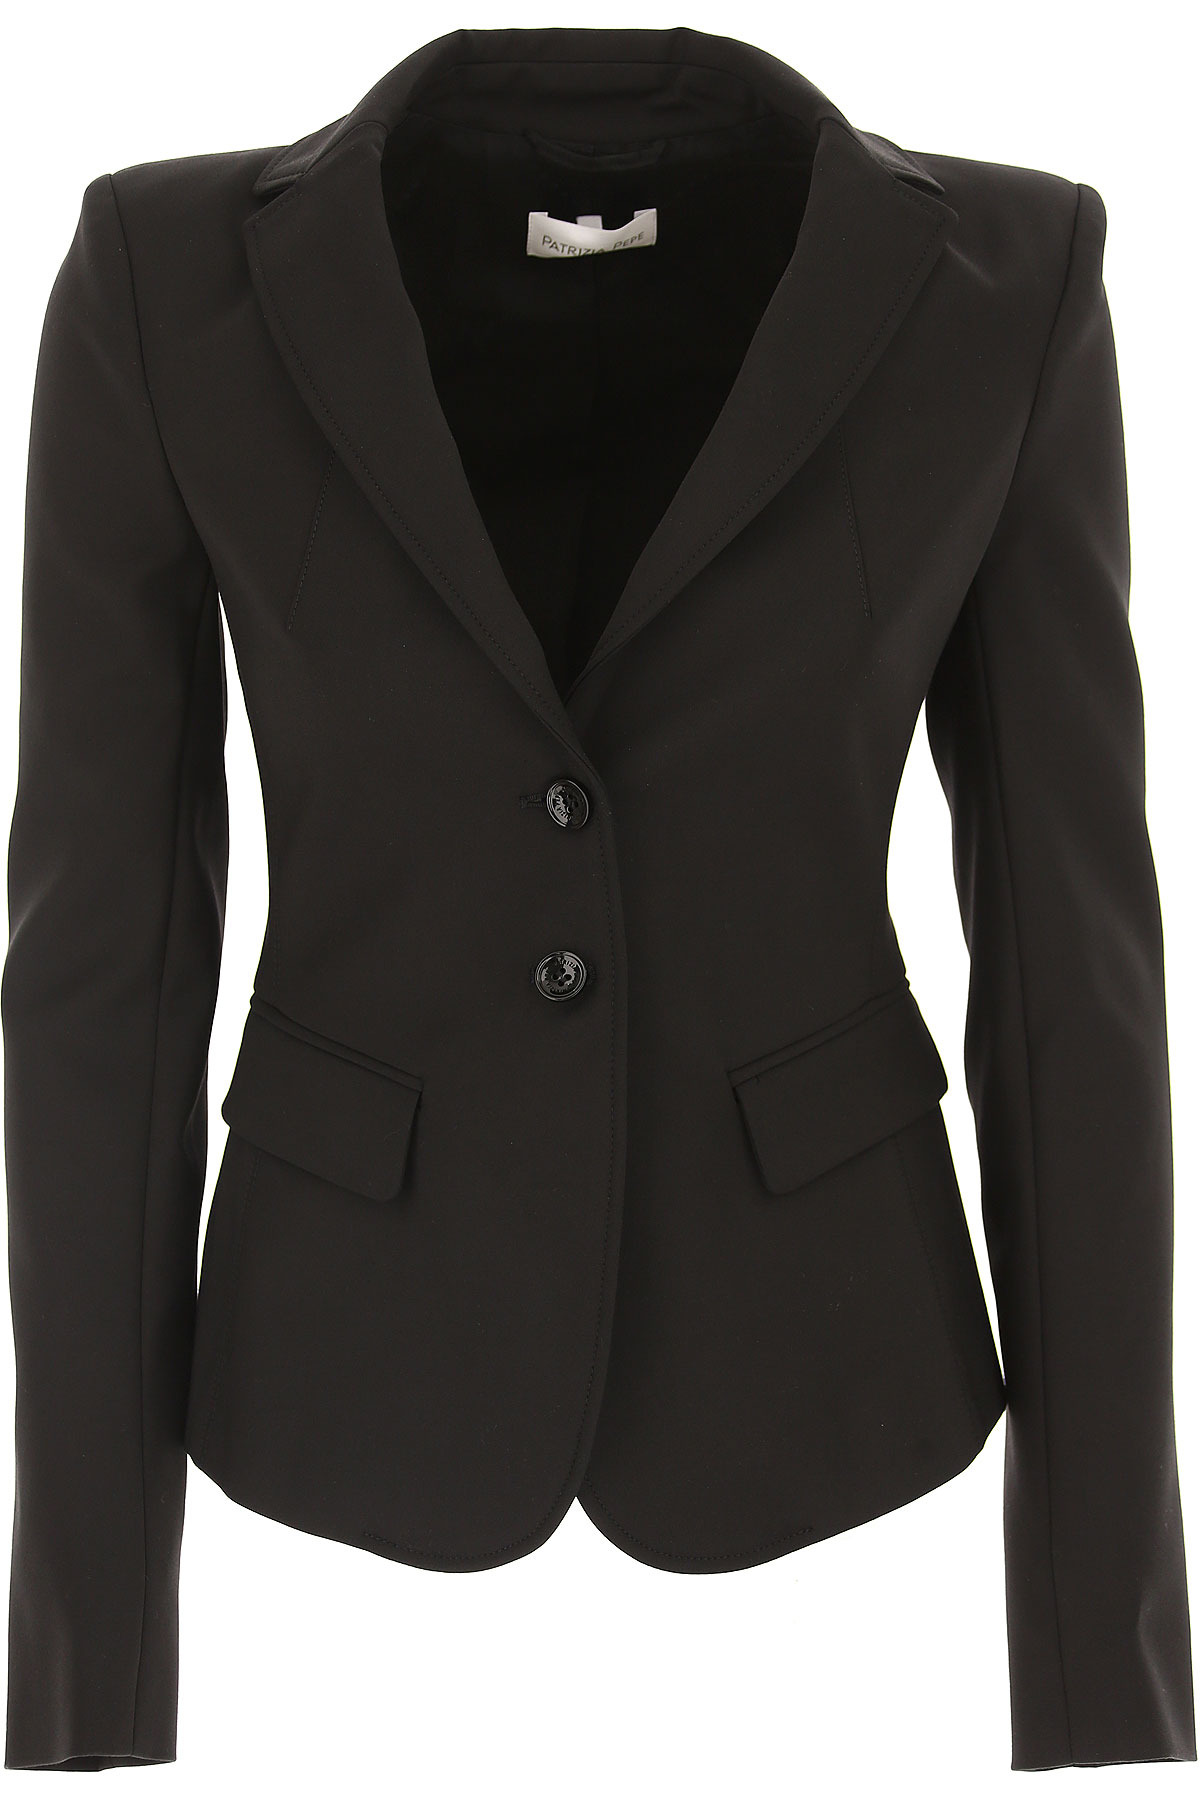 Image of Patrizia Pepe Blazer for Women, Black, Cotton, 2017, 10 4 6 8